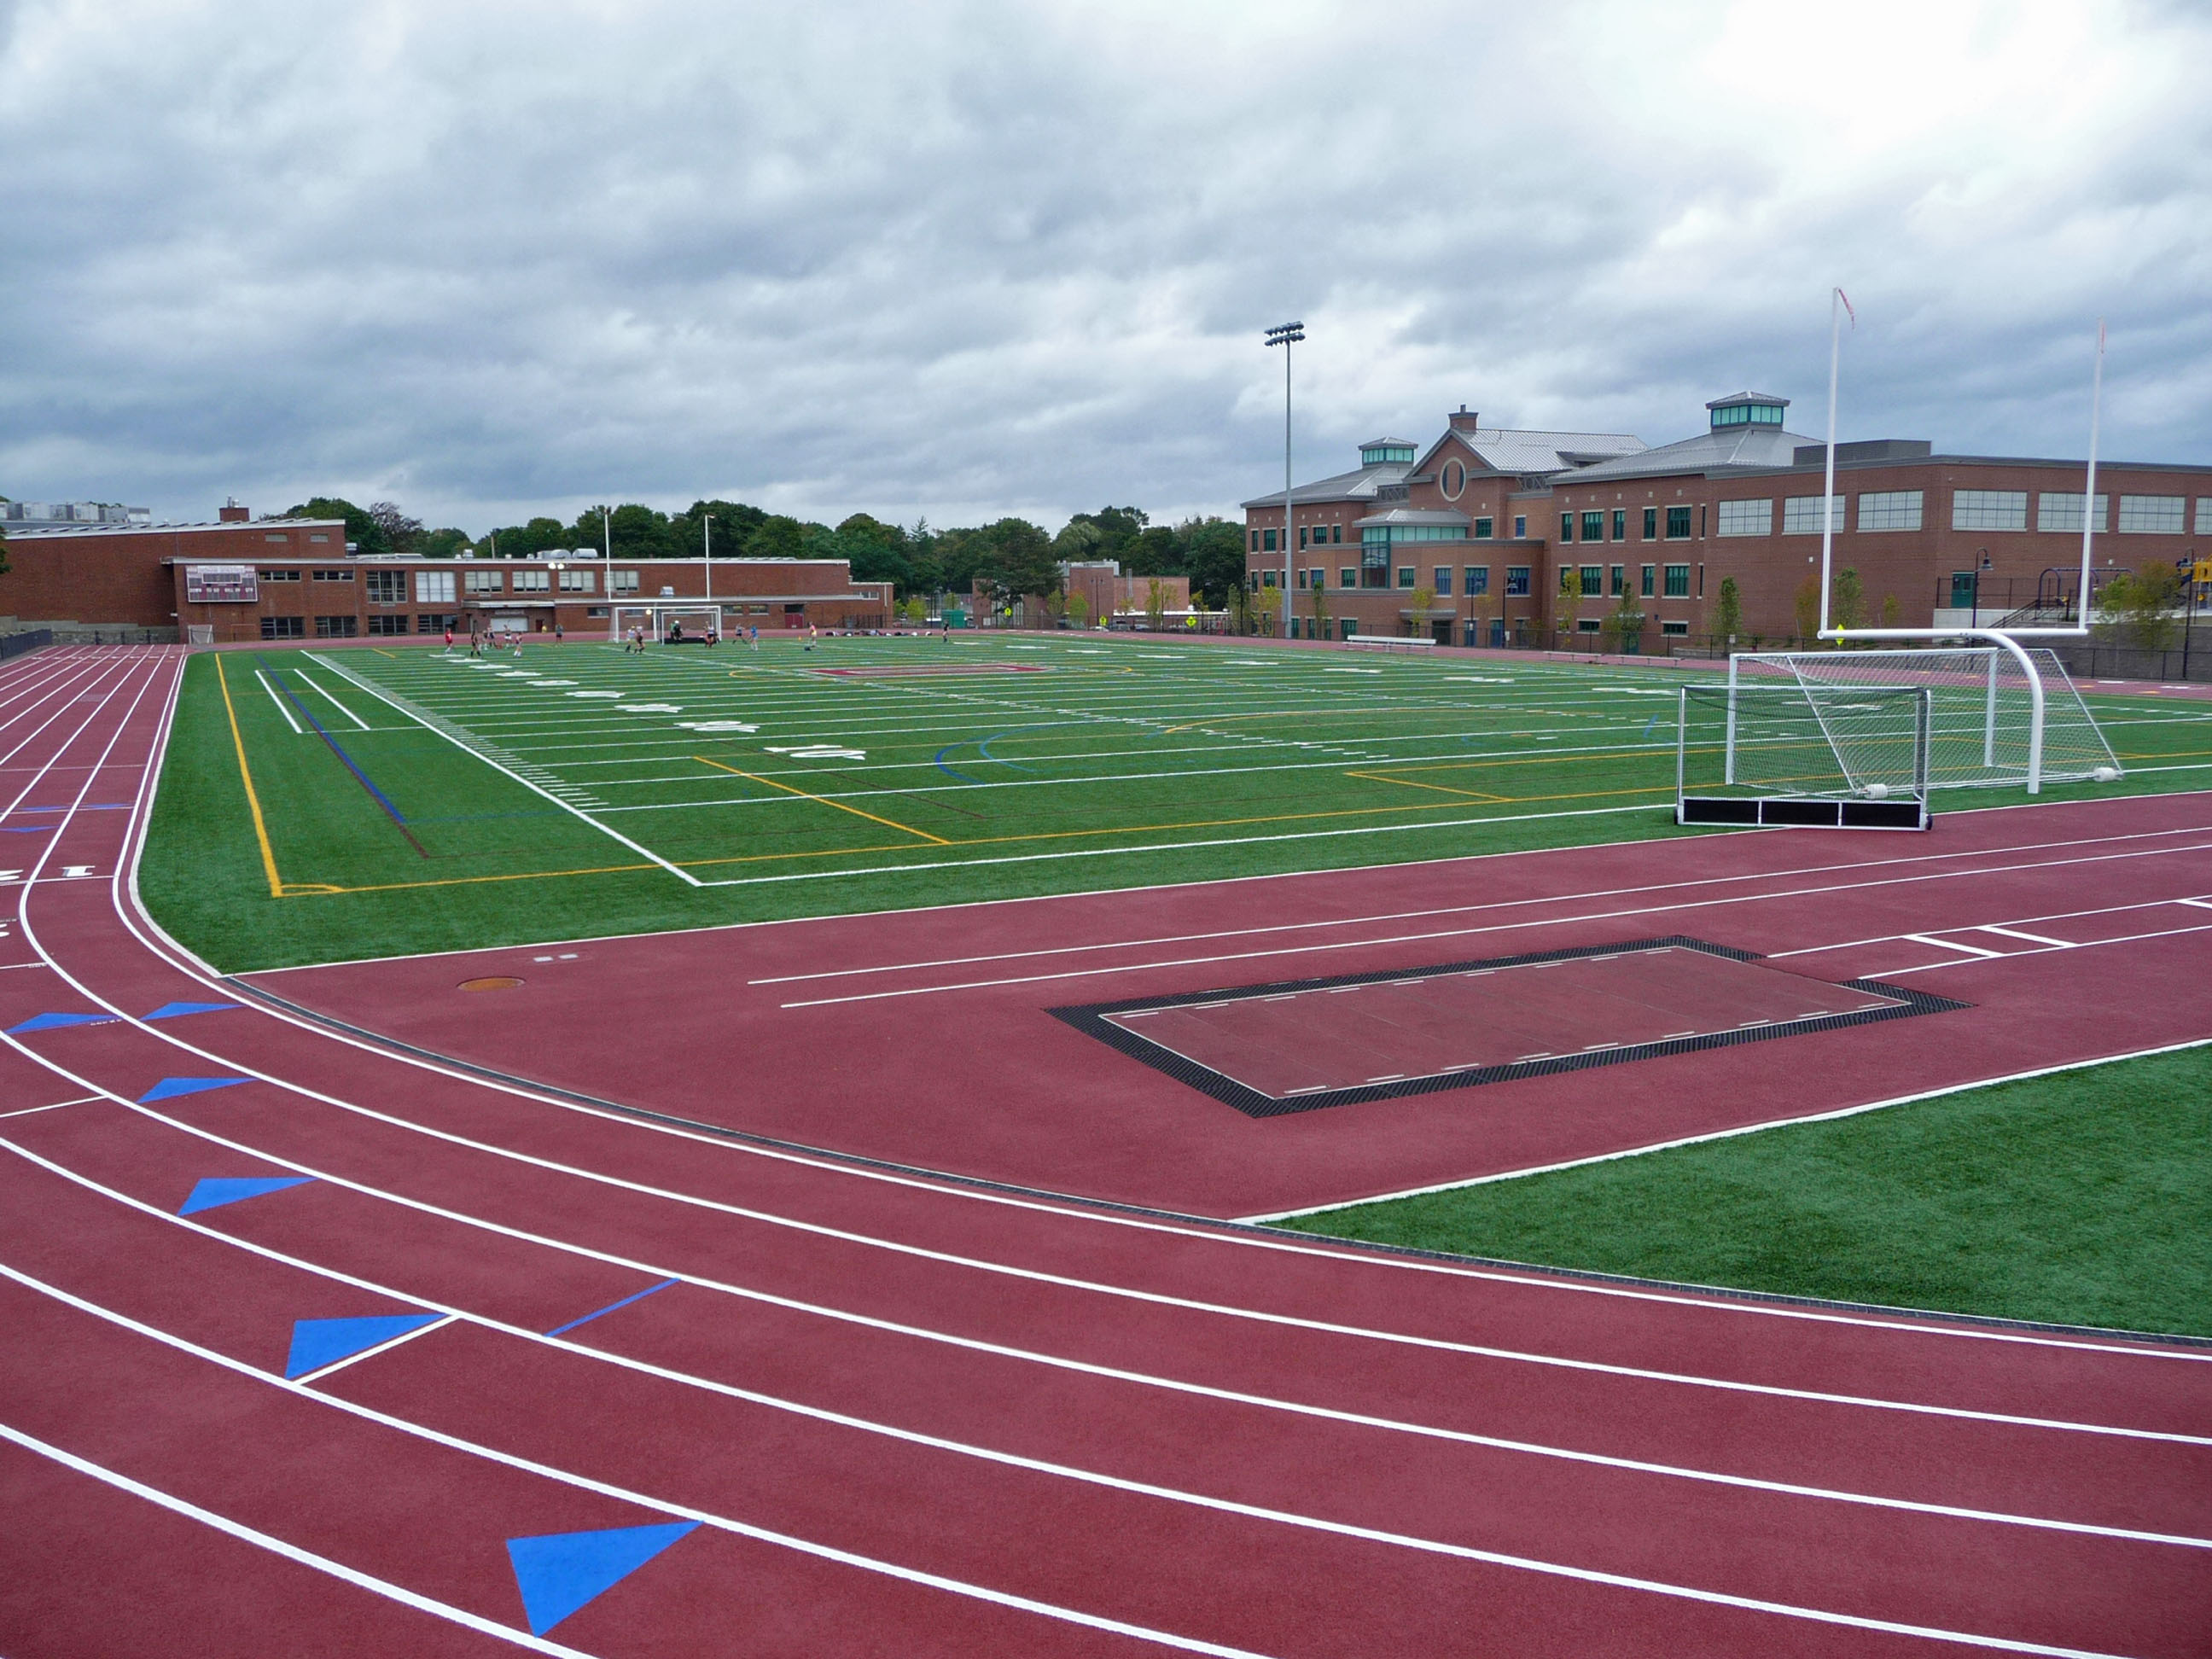 Dedham High School Track & Field Complex